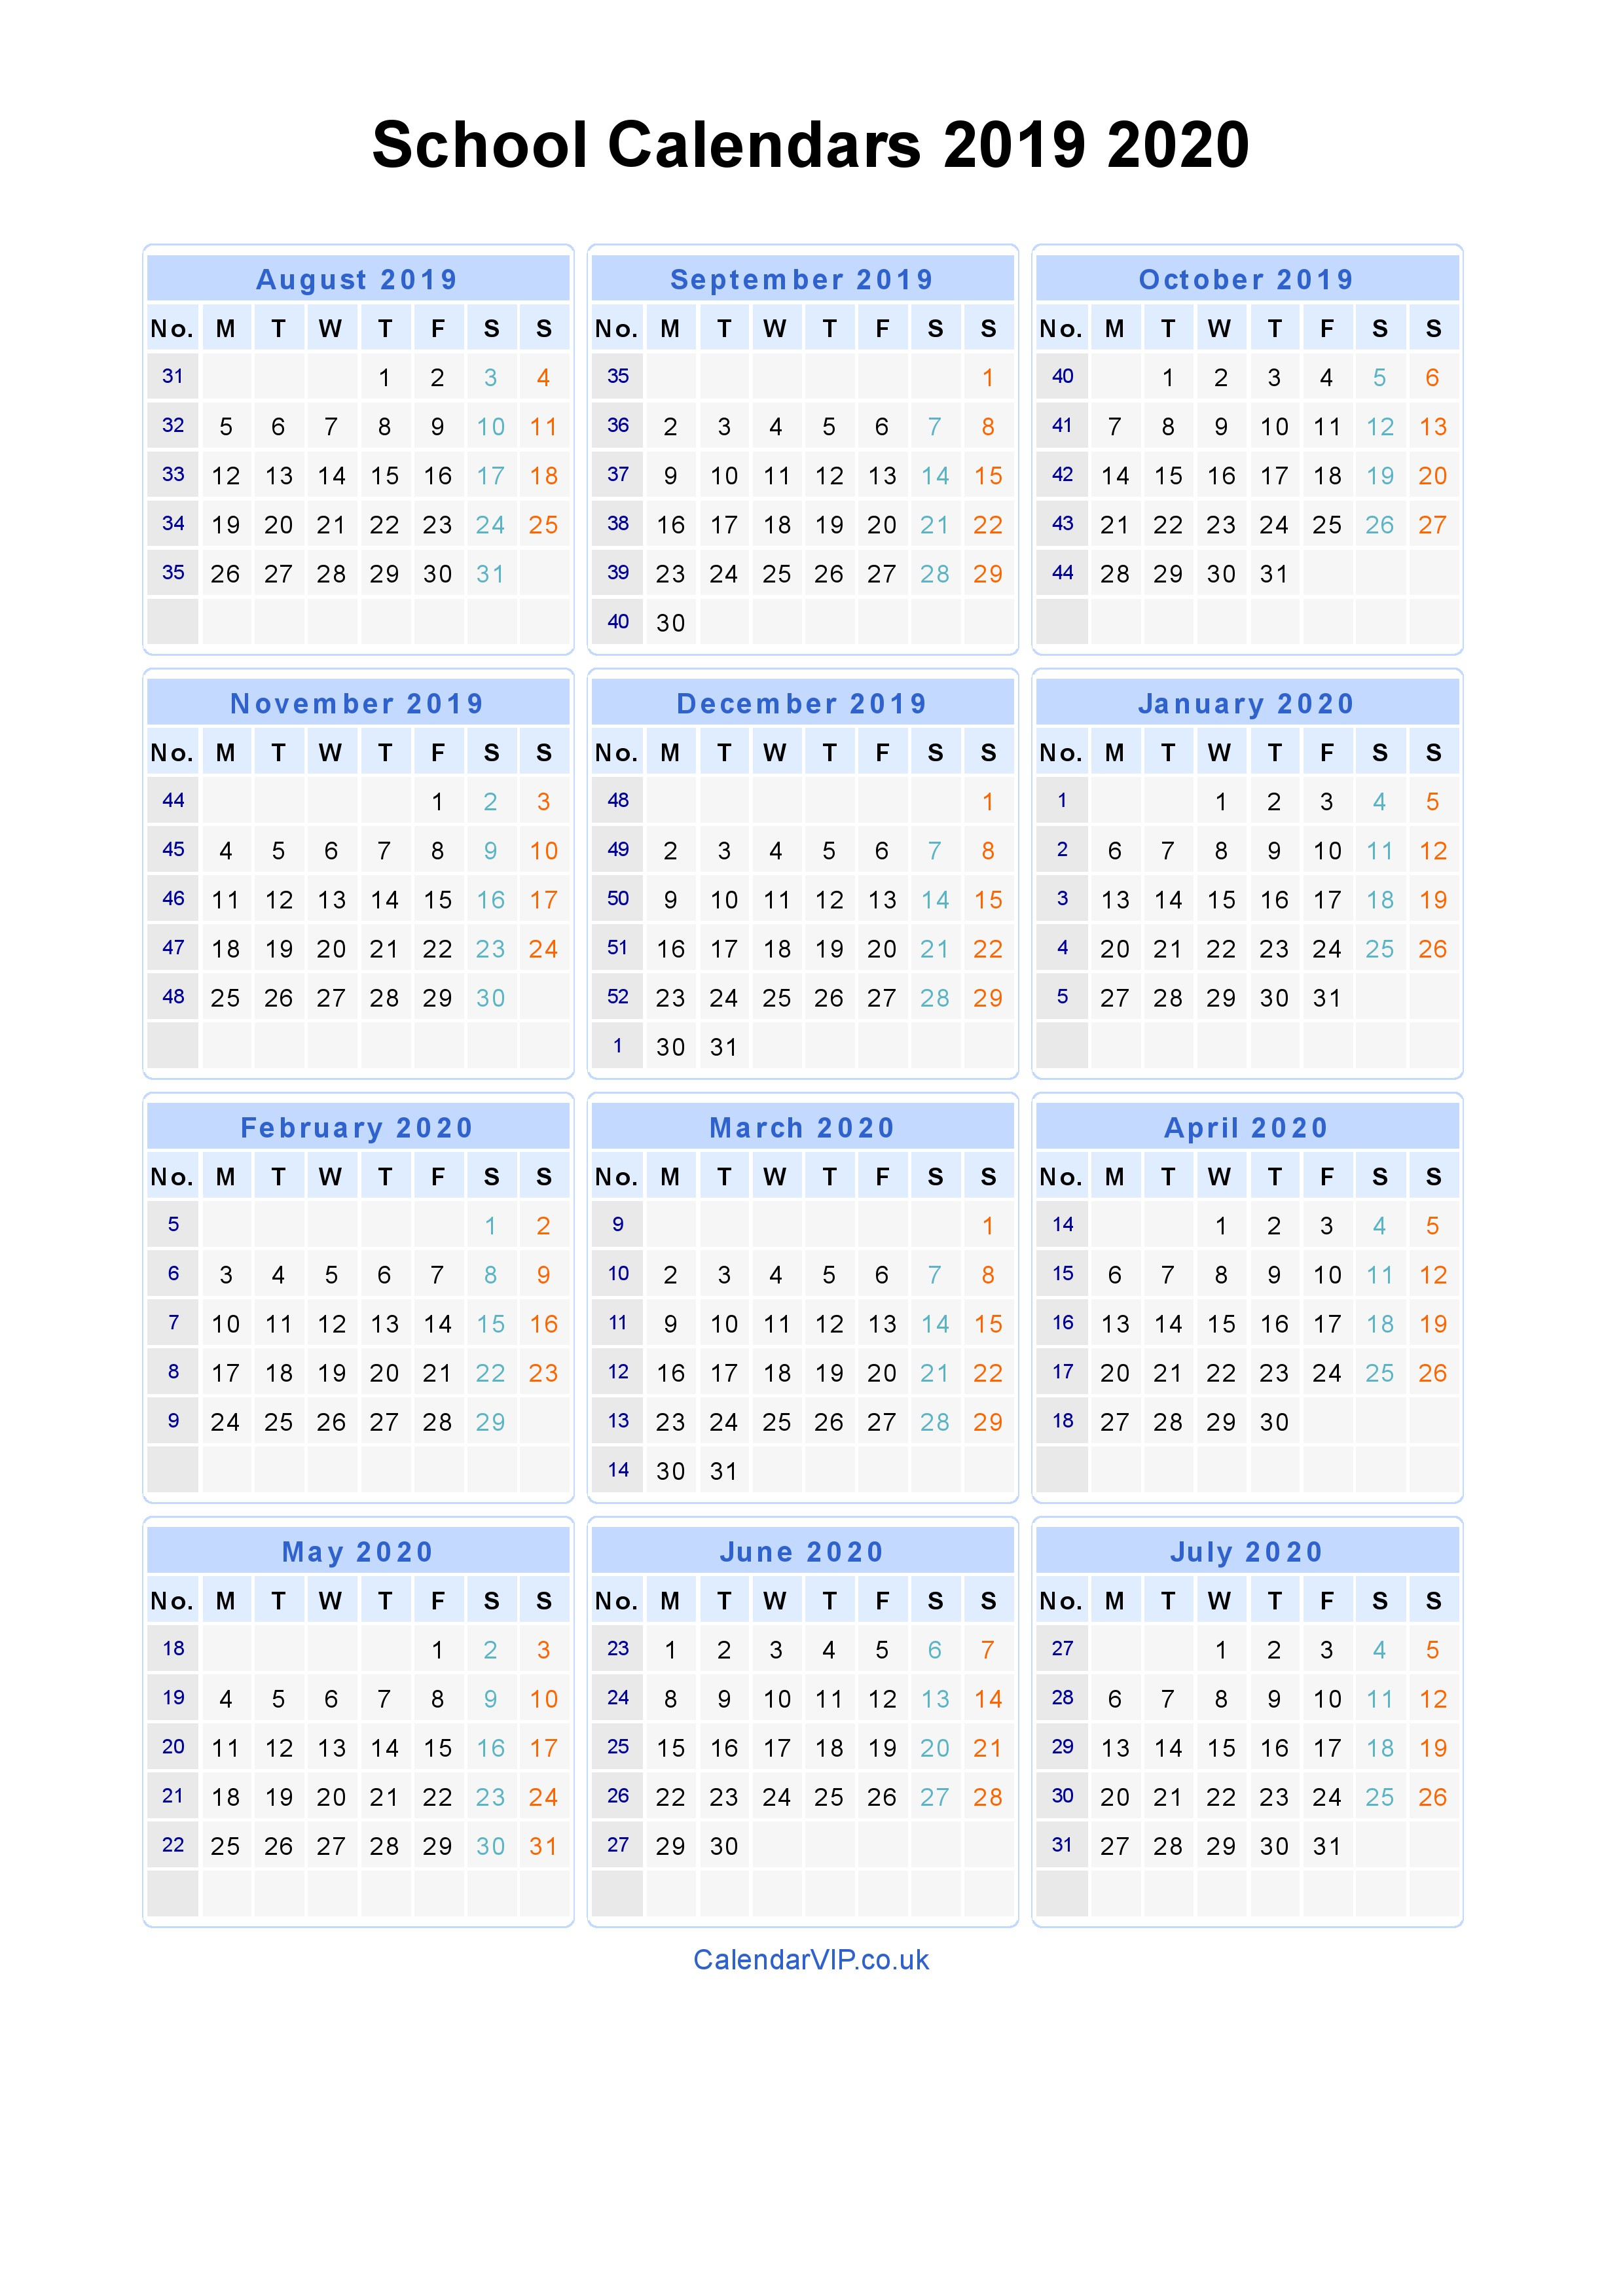 School Calendars 2019 2020 - Calendar From August 2019 To July 2020